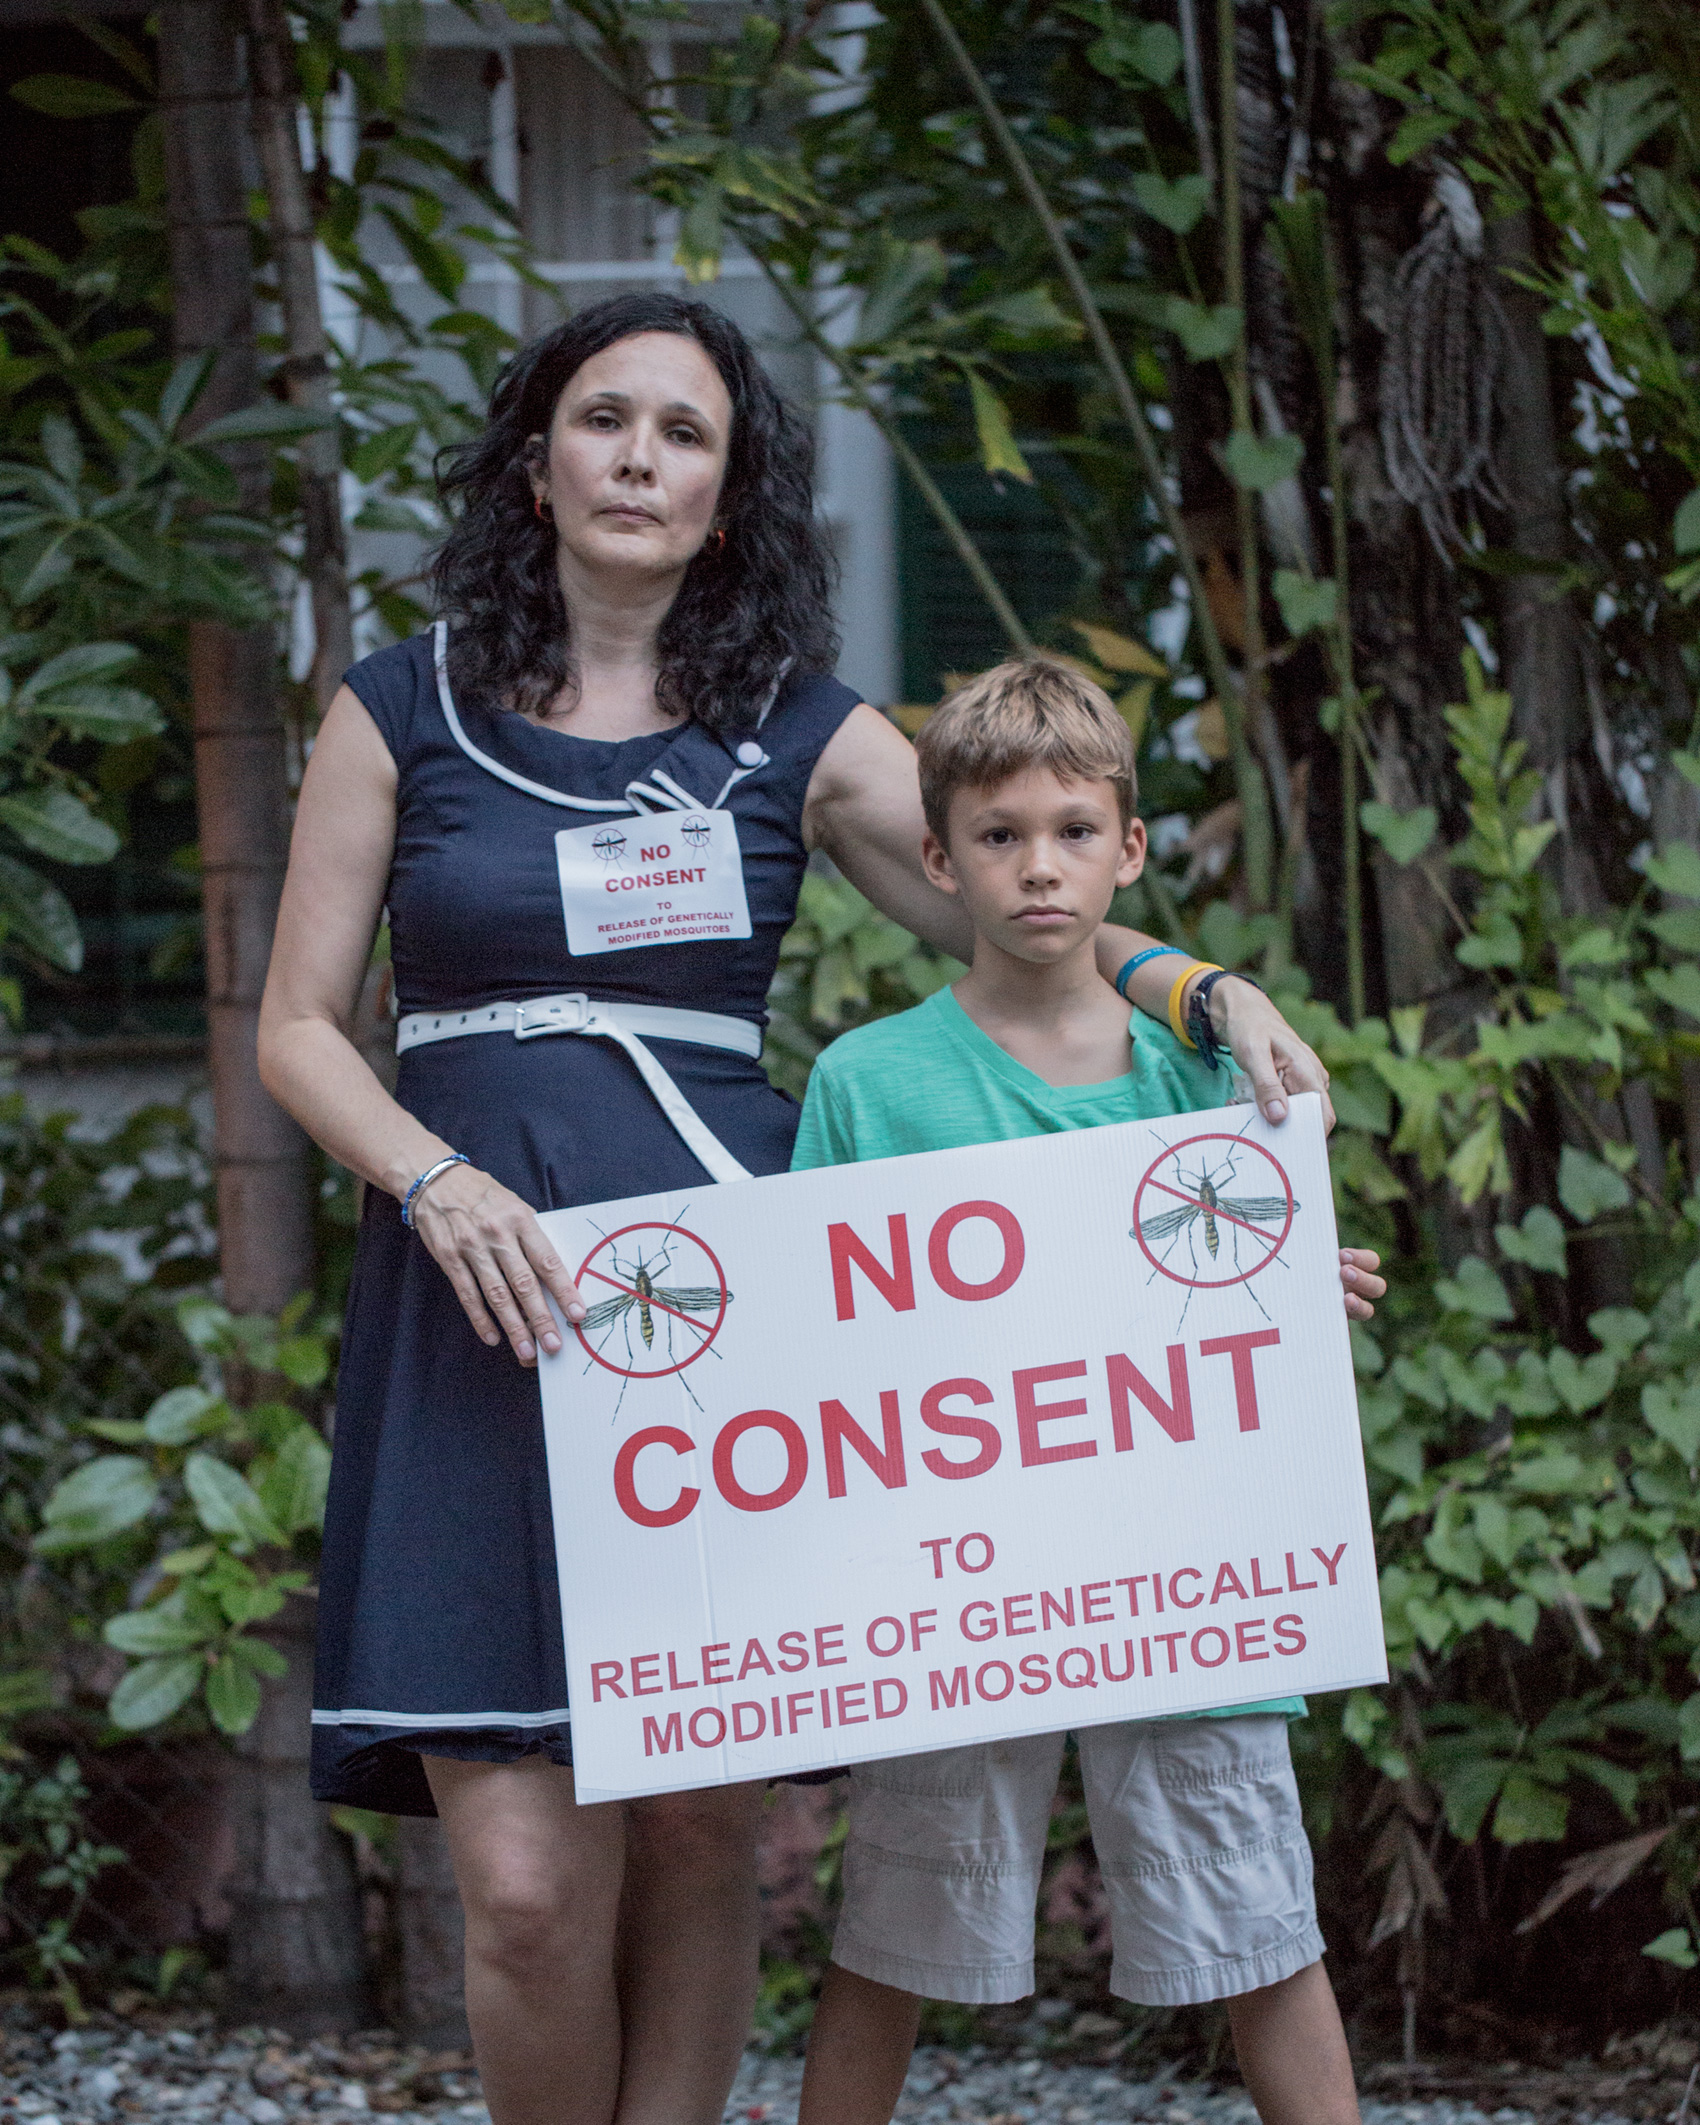 Mila de Mier, shown with her son Rubin, is one of the faces of the opposition.